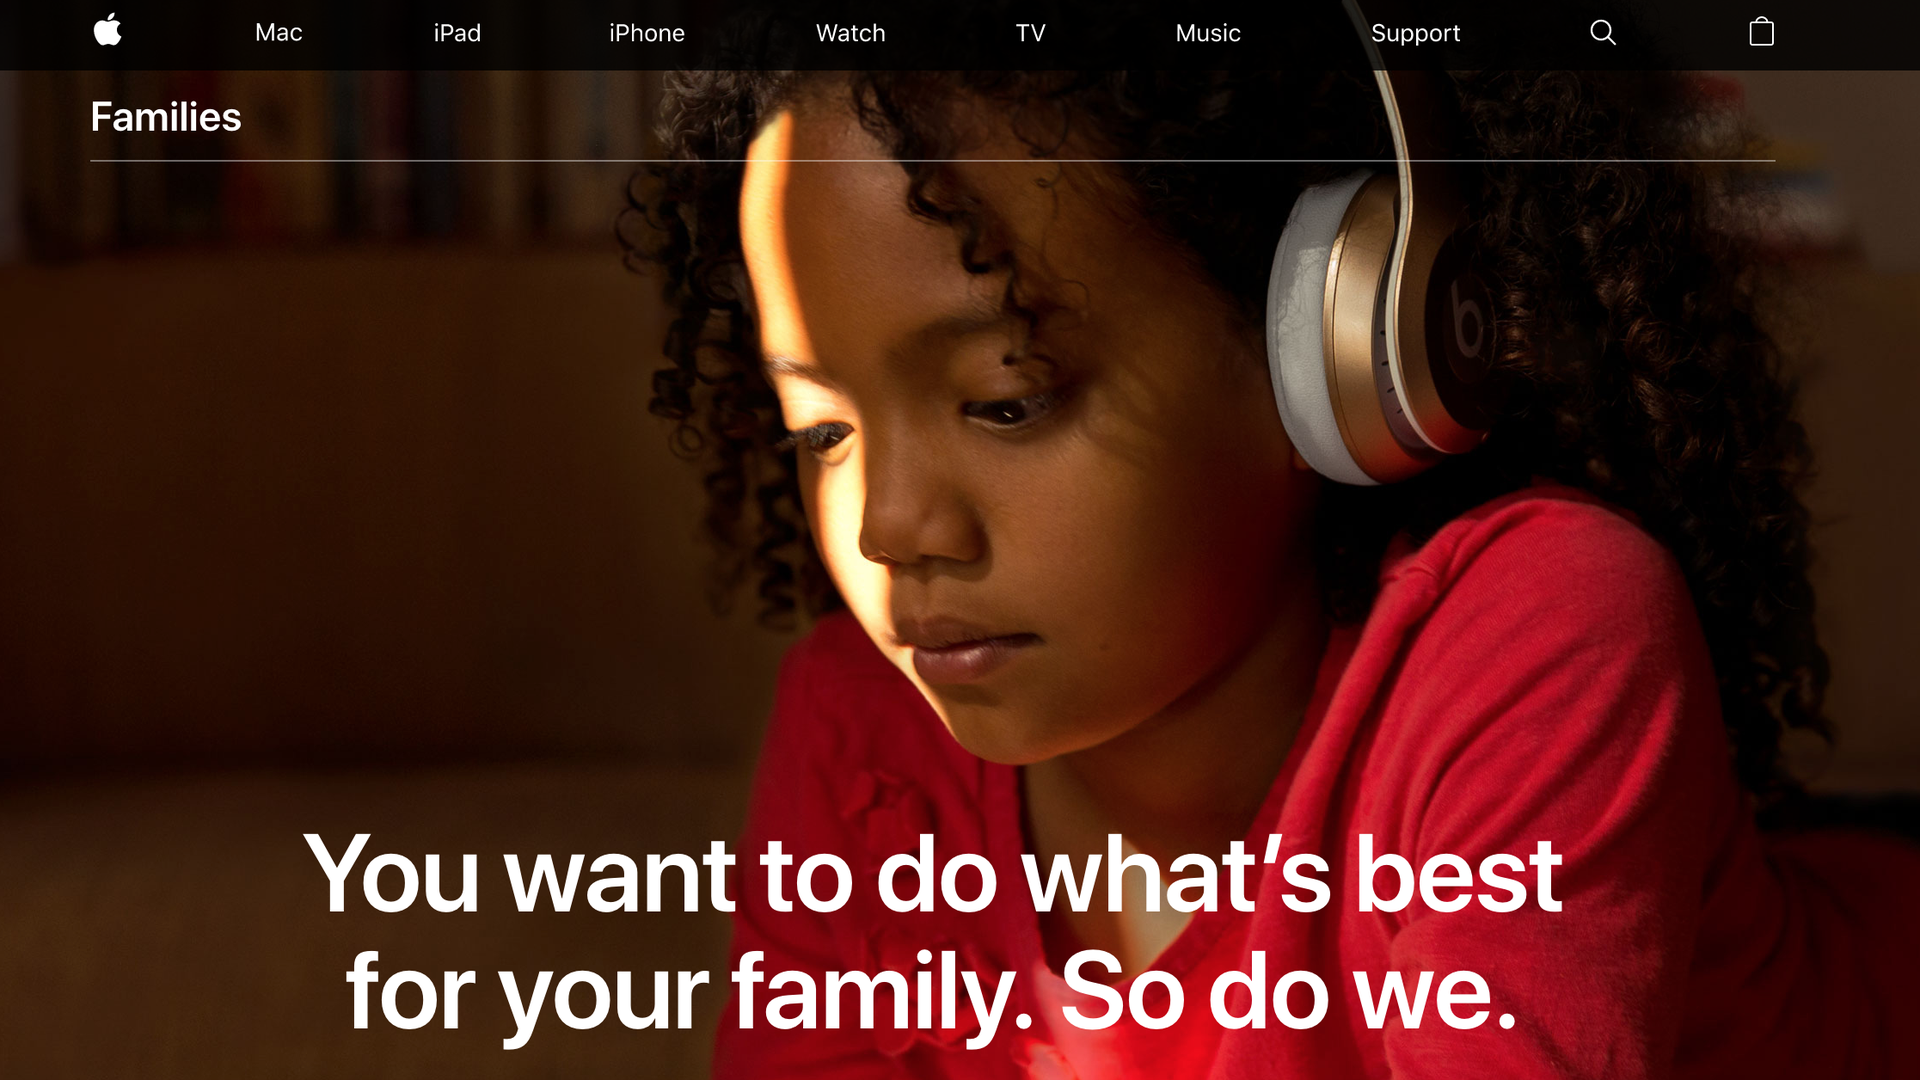 Apple's page for families